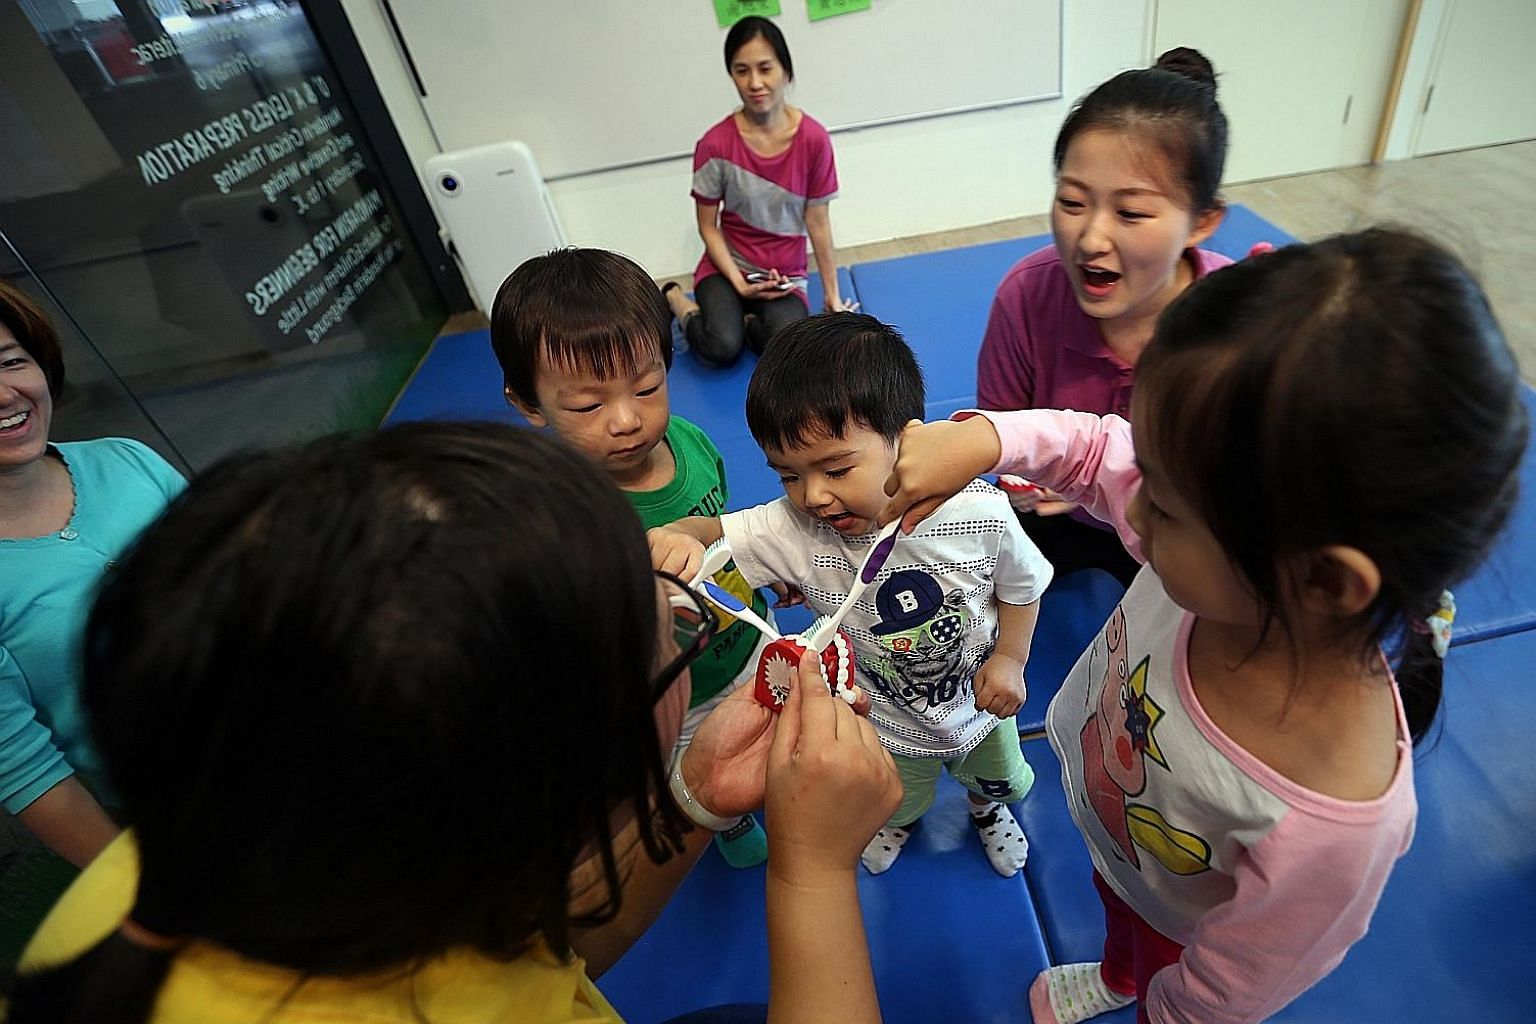 Instead of paying a premium for enrichment classes, parents can send their children to cheaper alternatives, such as classes at community centres.